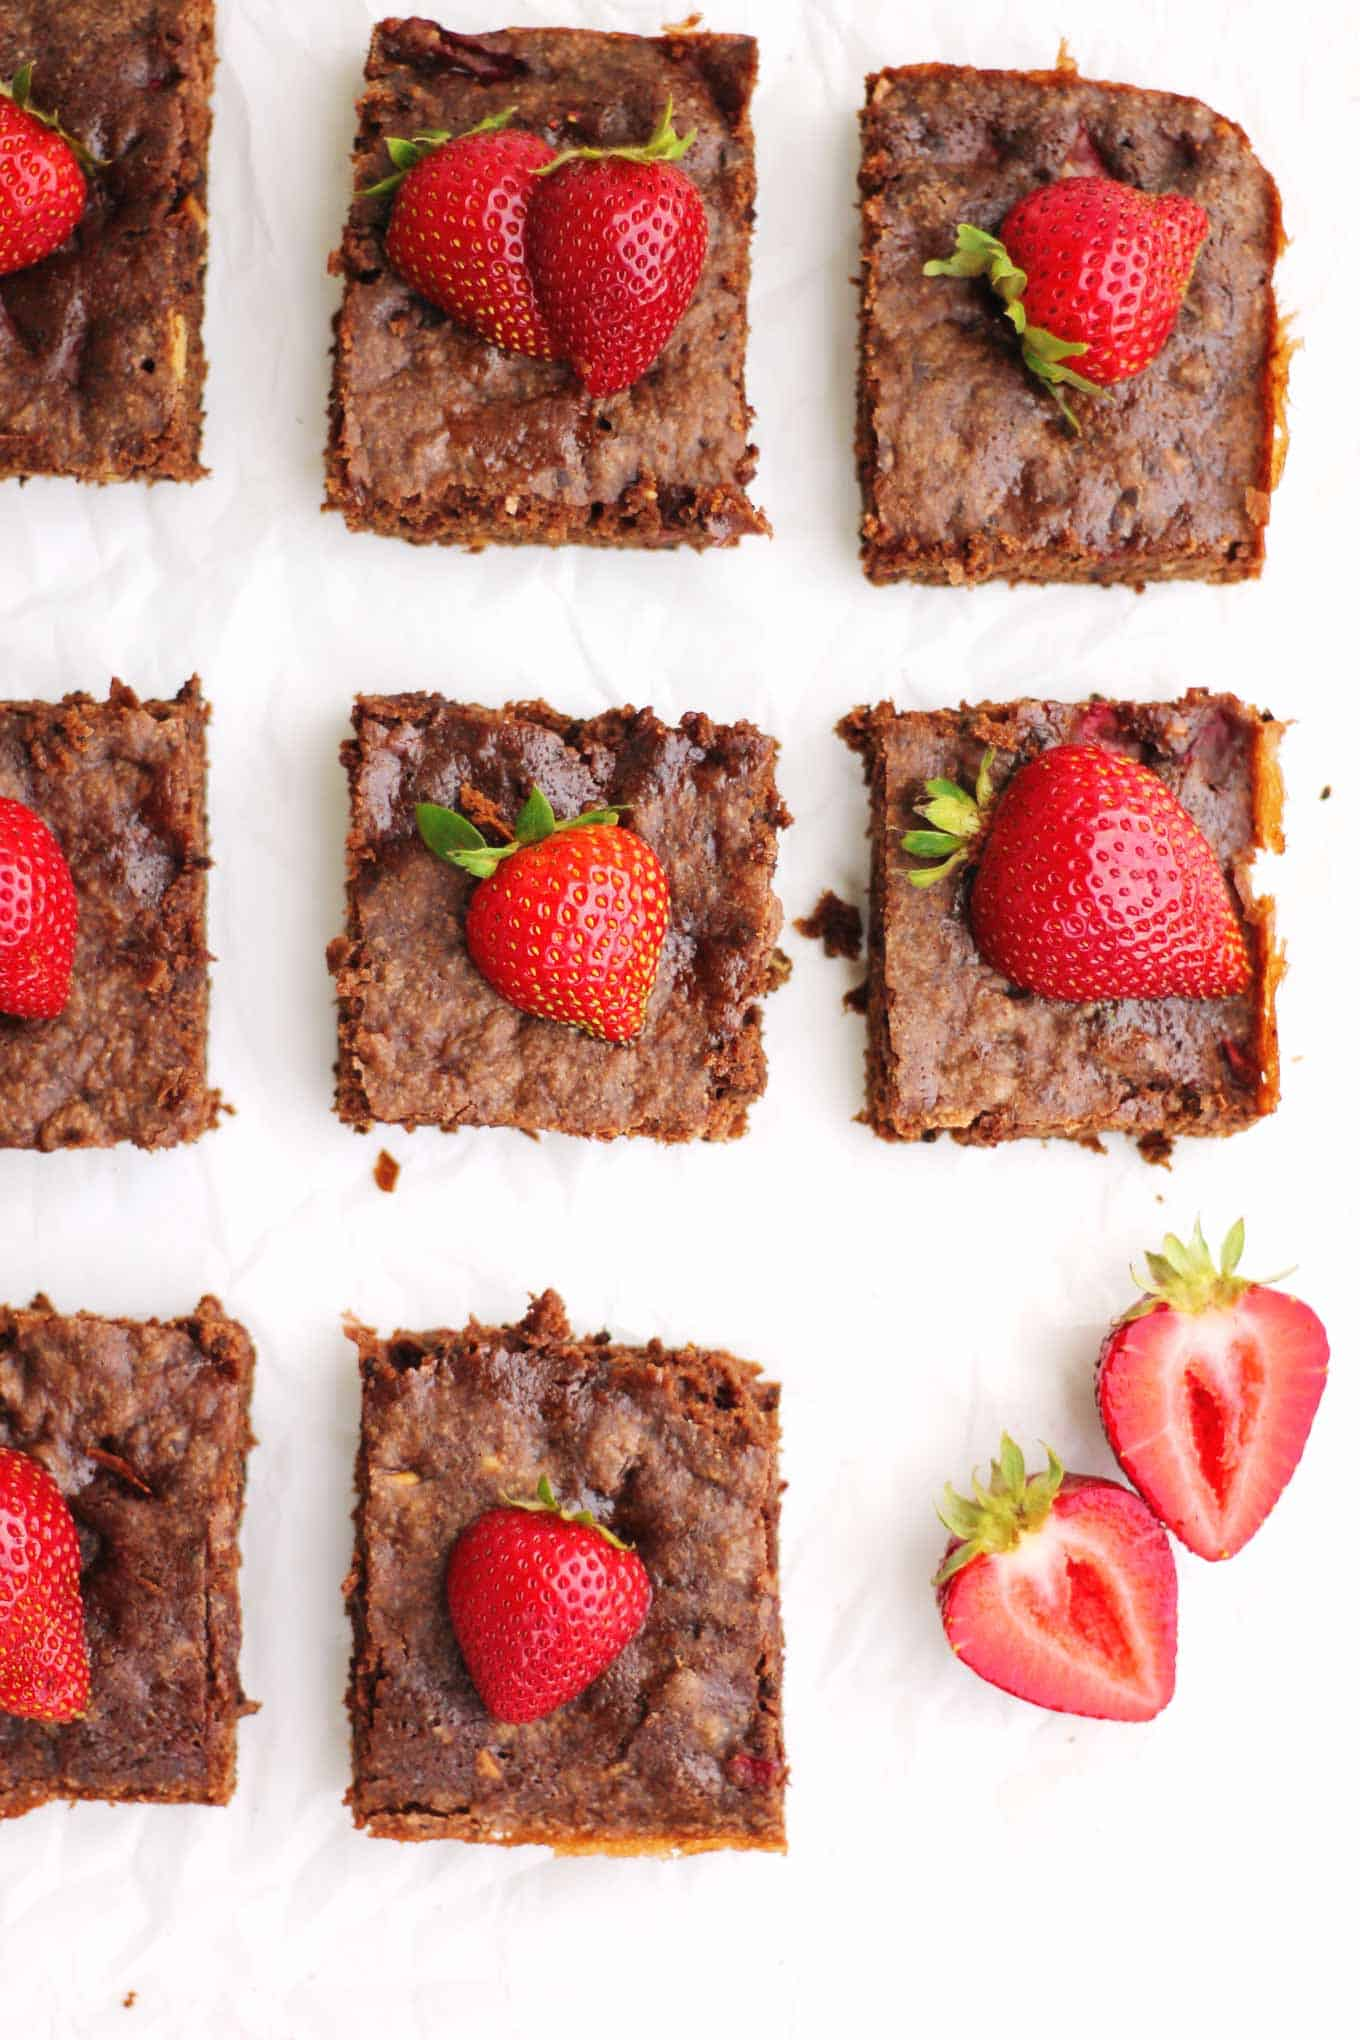 Chocolate fudge vegan brownies recipe! Made even sweeter with strawberries and sea salt. From The Wicked Healthy cookbook. // Rhubarbarians